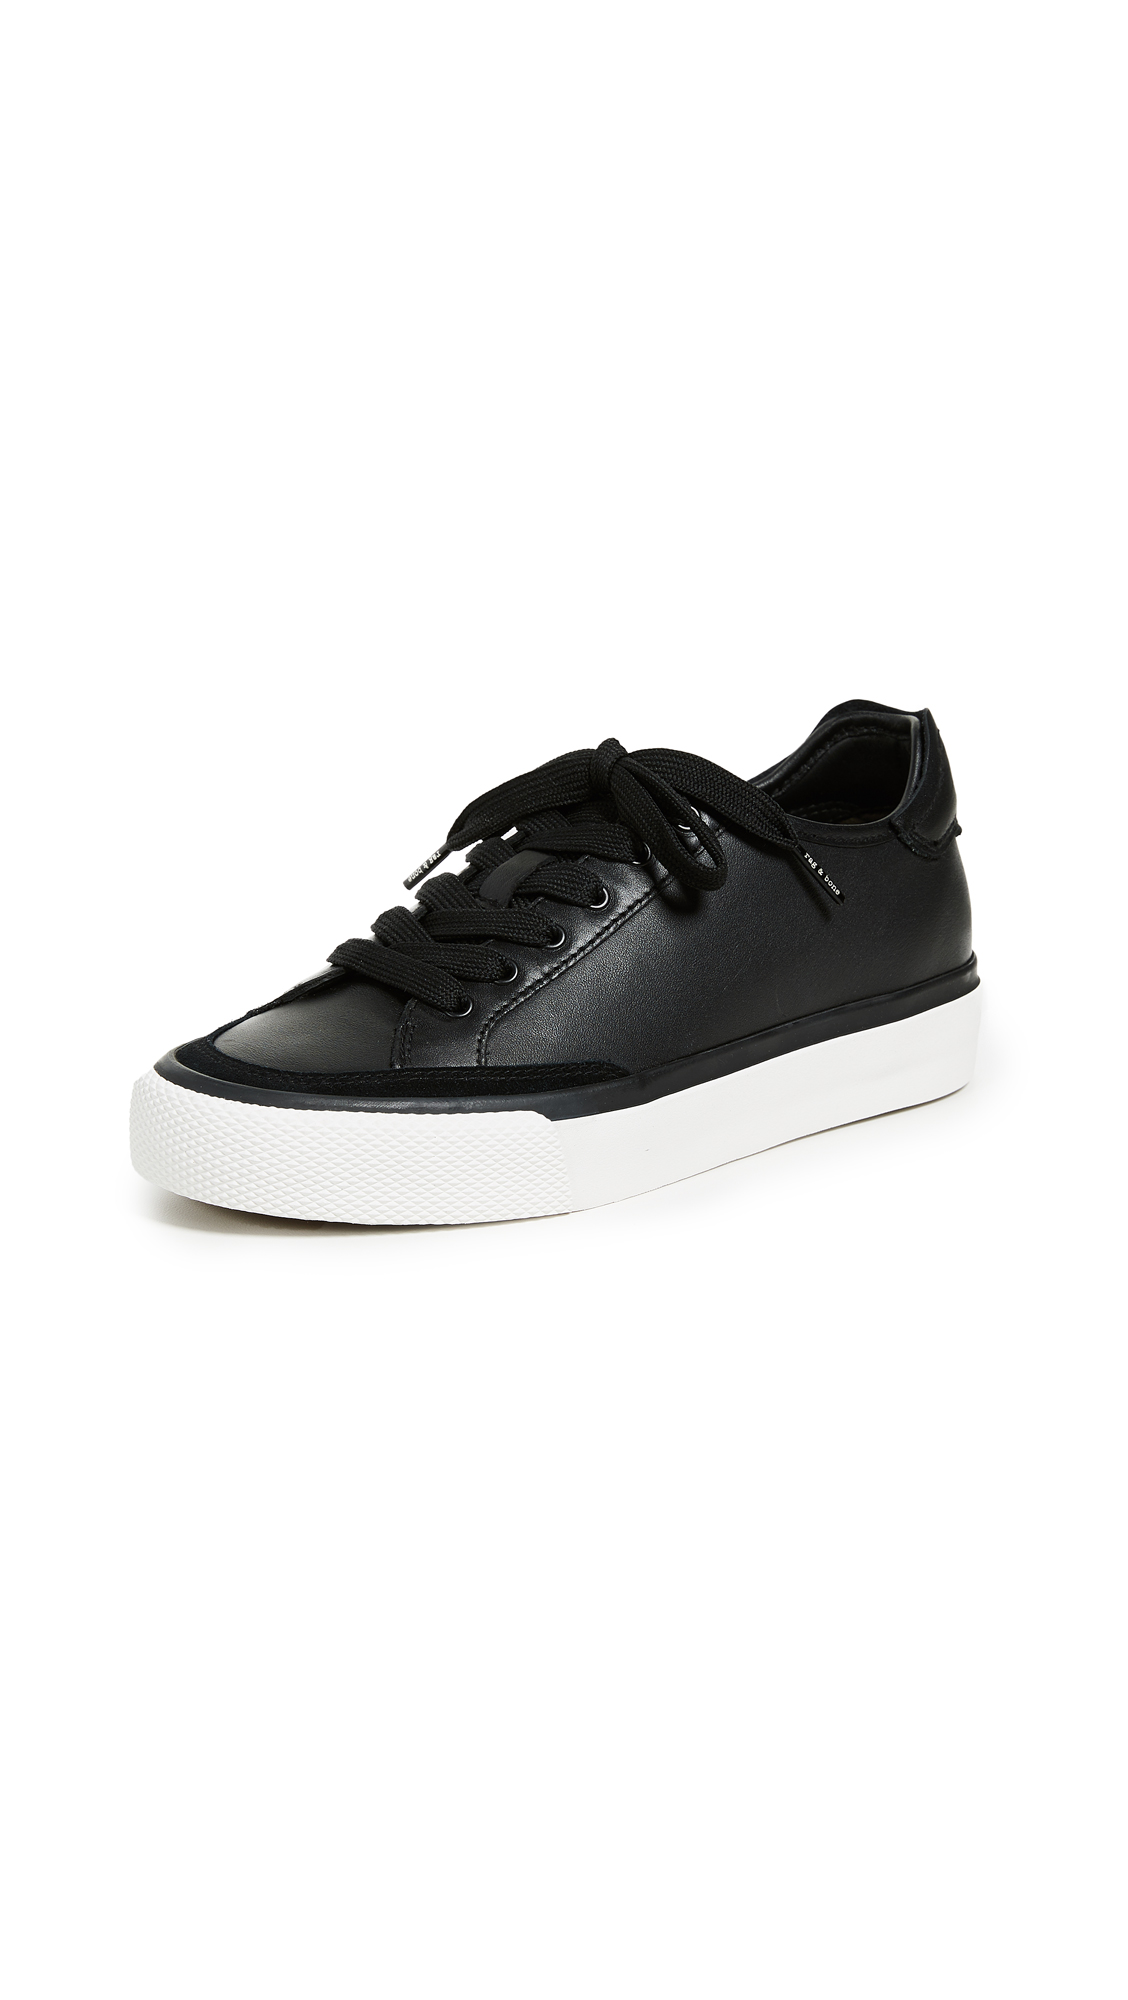 Rag & Bone RB Army Low Sneakers - Black